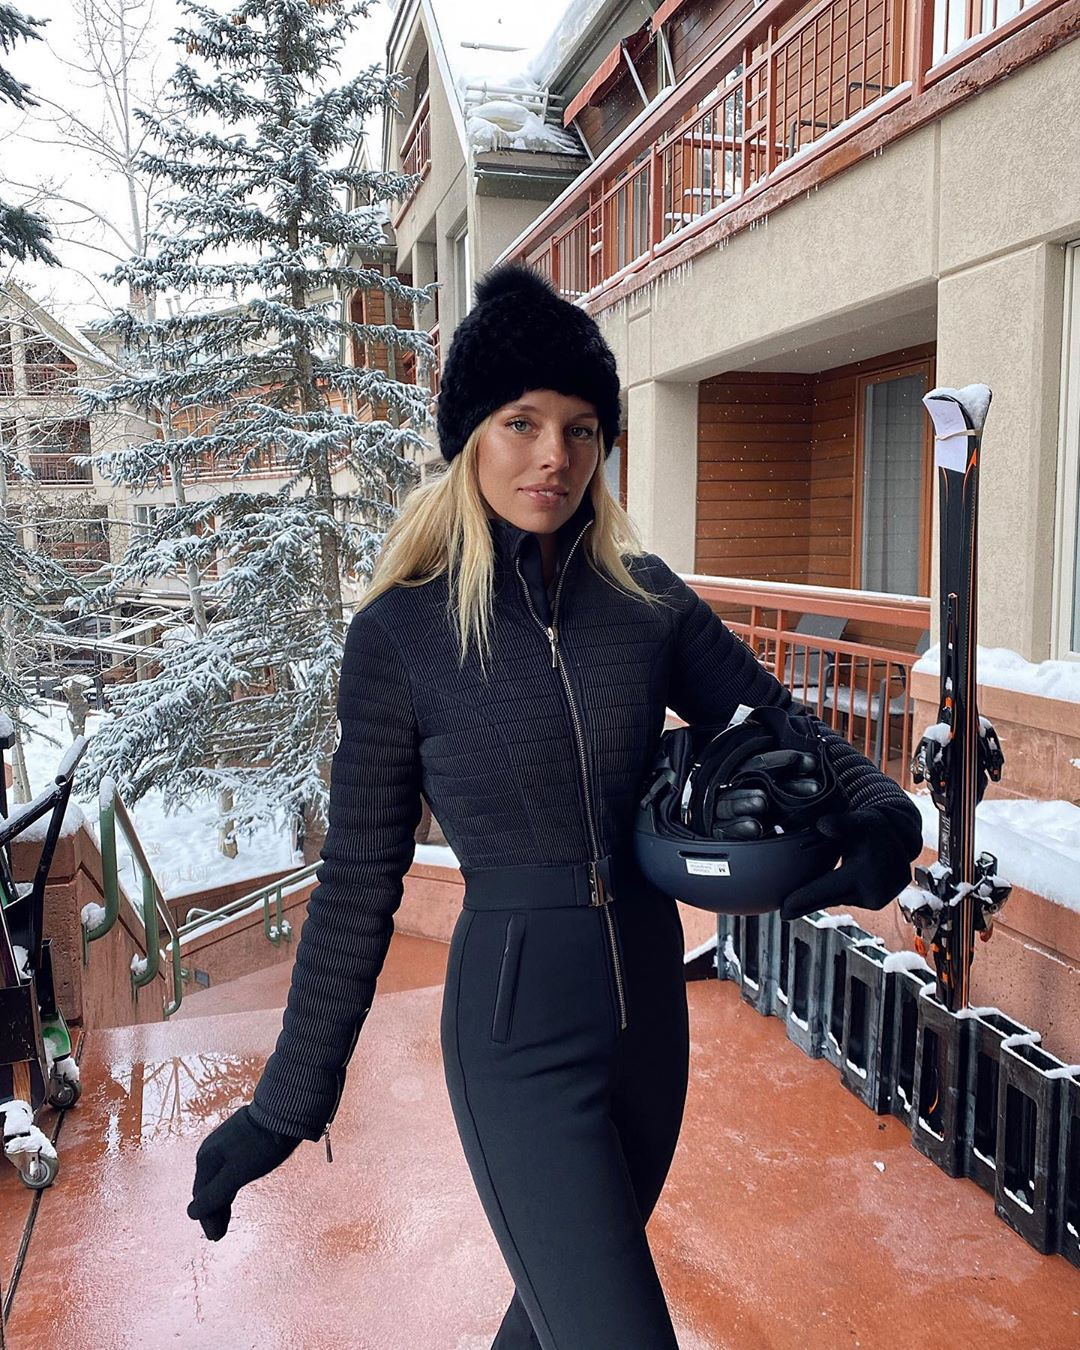 black dresses ideas with beanie, cap, outfit designs